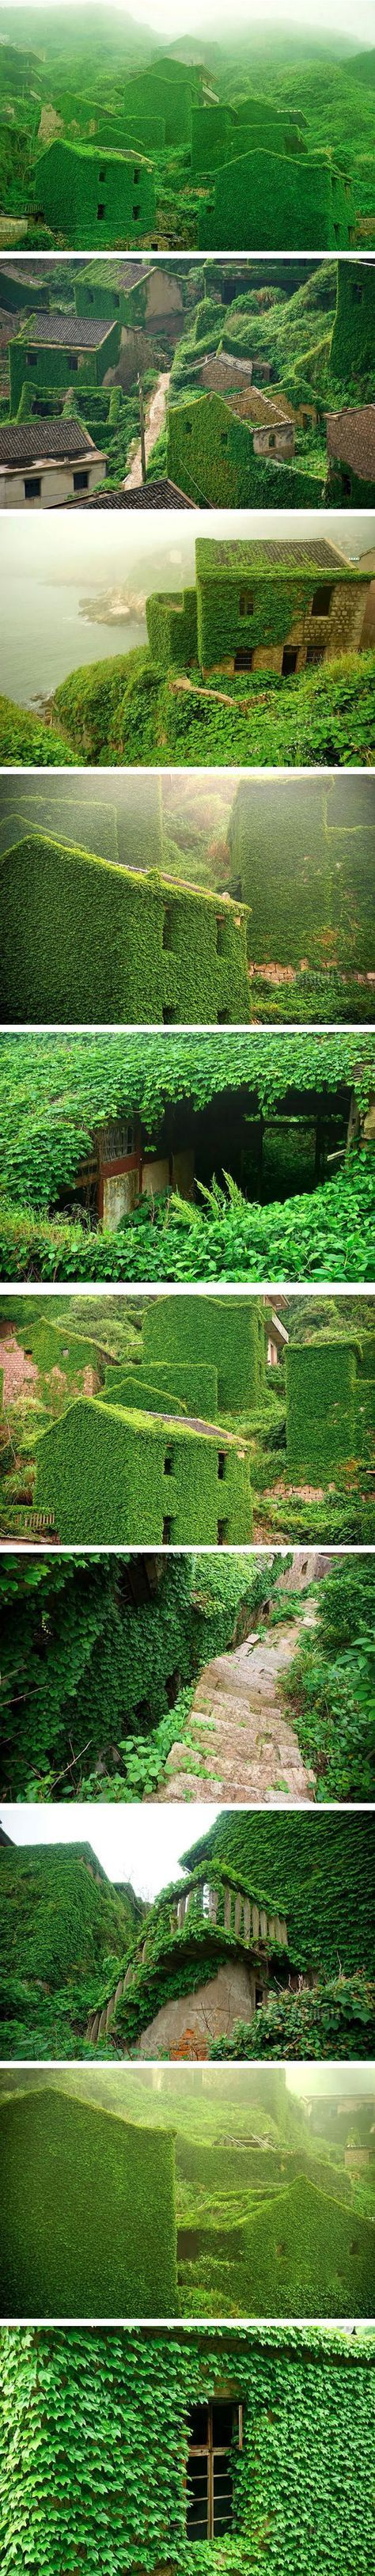 Reclaimed by nature (Tang Yuhong). It's almost like the Earth covering its nakedness until it can restore its dignity...